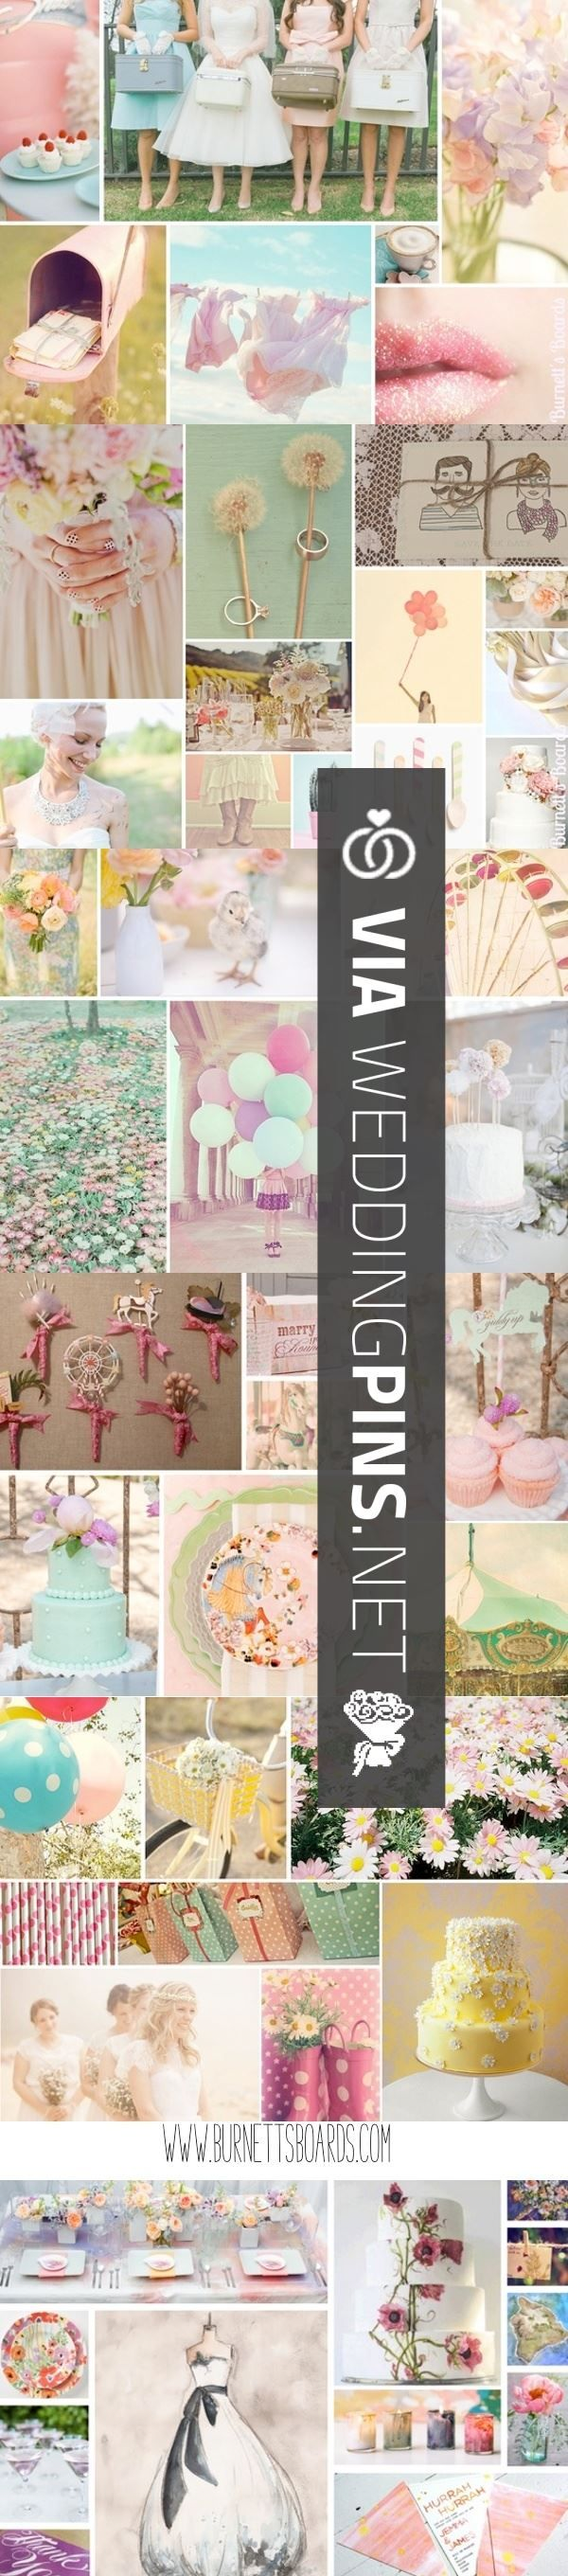 Awesome - Wedding Colour Schemes 2016 - ... i actually just repinned this collage for the very top picture with the bridal party holding the suit cases. love those soft colors. | CHECK OUT MORE FANTASTIC PICTURES OF NEW Wedding Colour Schemes 2016 OVER AT WEDDINGPINS.NET | #weddingcolourschemes2016 #weddingcolourschemes #weddingcolours #weddingcolors #weddings #weddinginvitations #vows #tradition #nontraditional #events #forweddings #iloveweddings #romance #beauty #planners #